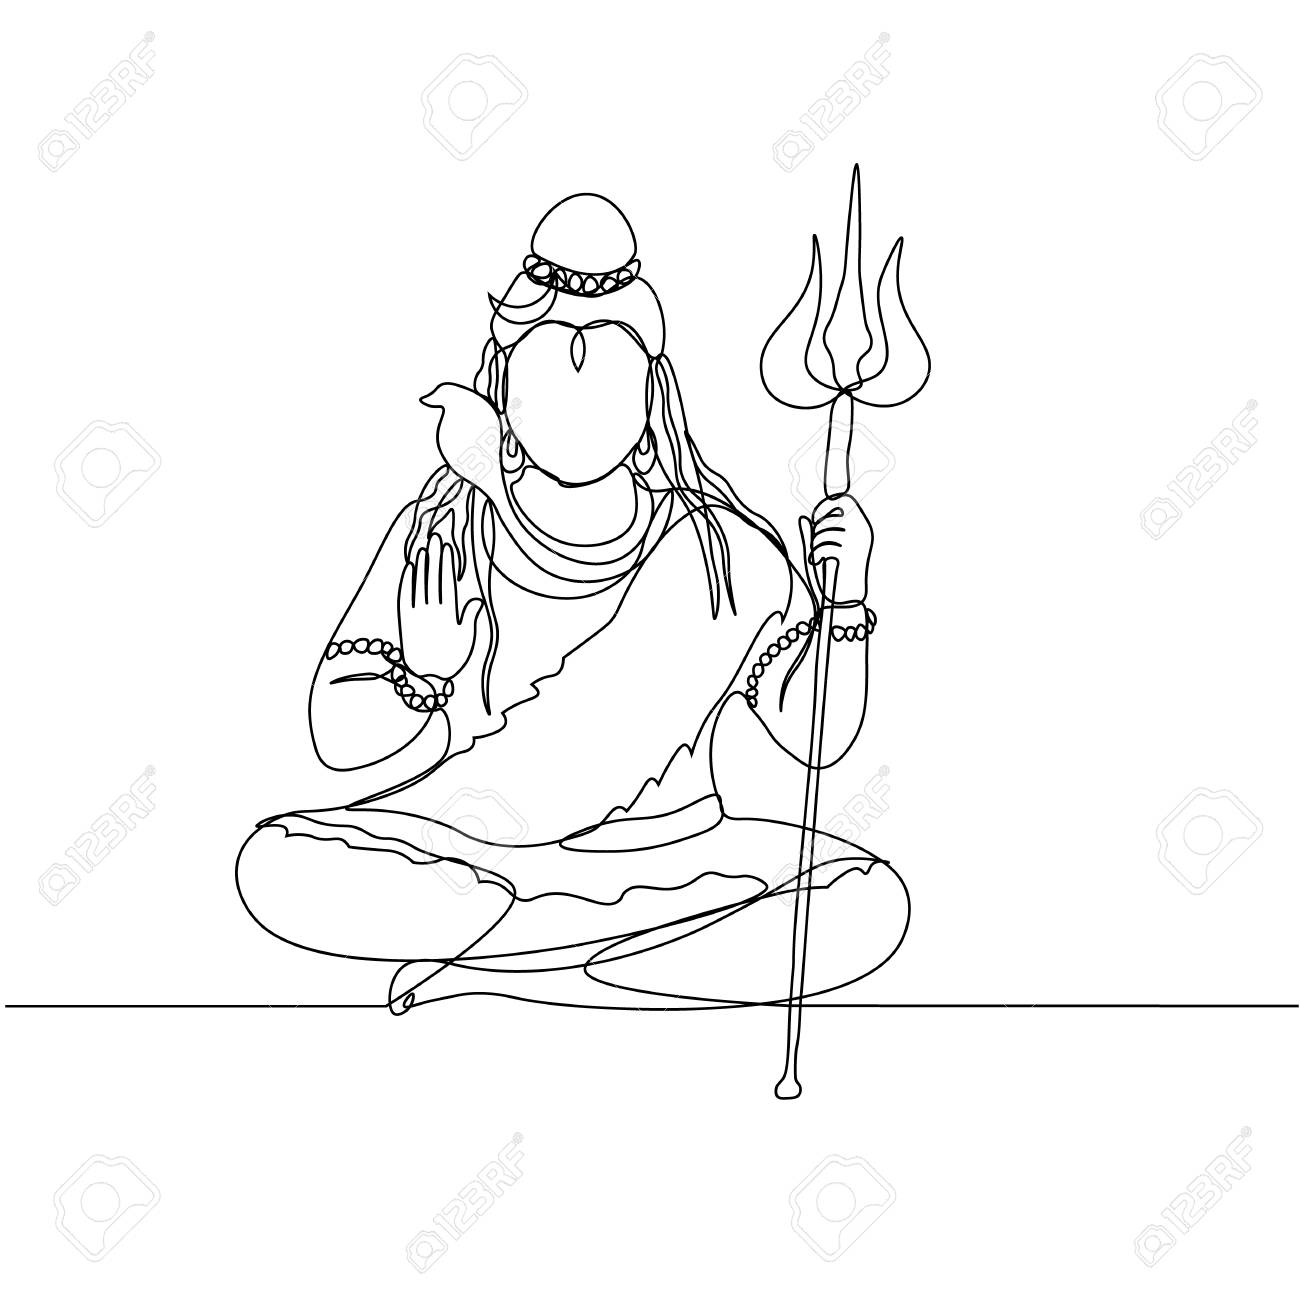 continuous line drawing  Shiva  Silhouette  God